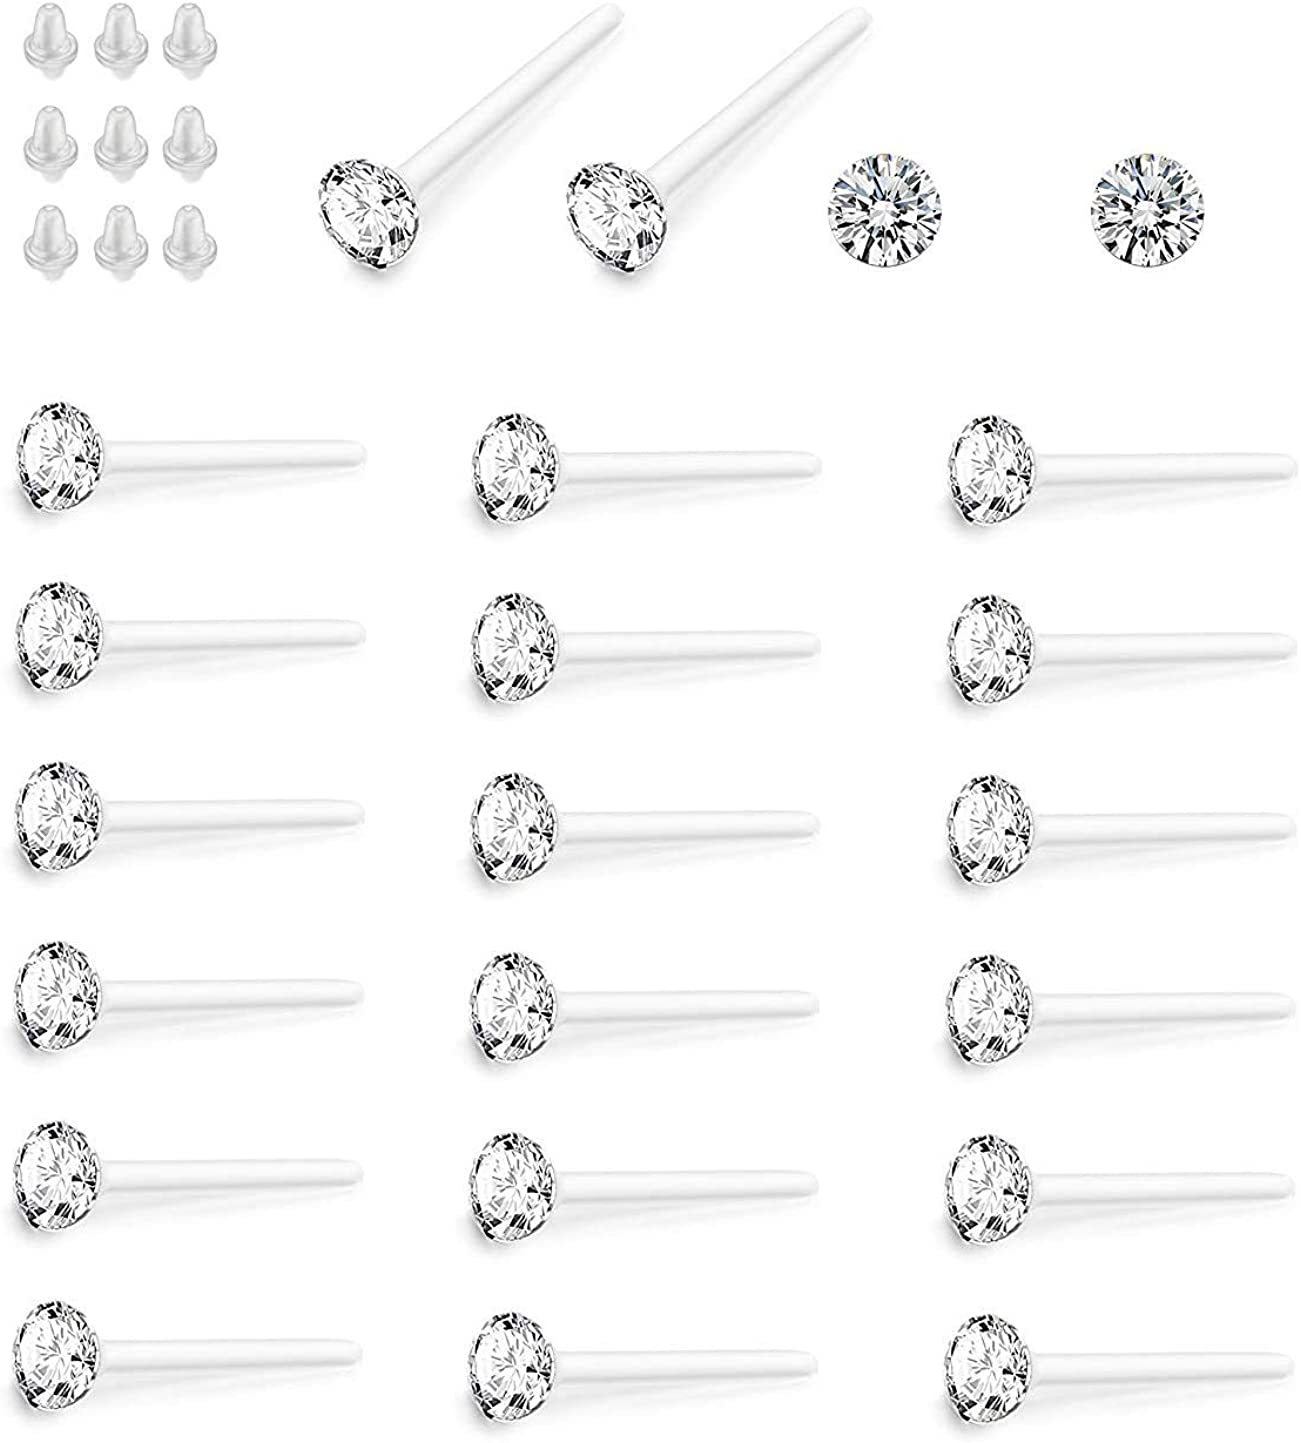 Hanpabum 36 Pairs 2.5MM Crystal HypoallergenicStud Earrings Set Made with Acrylic Post for Men Women (B:White)